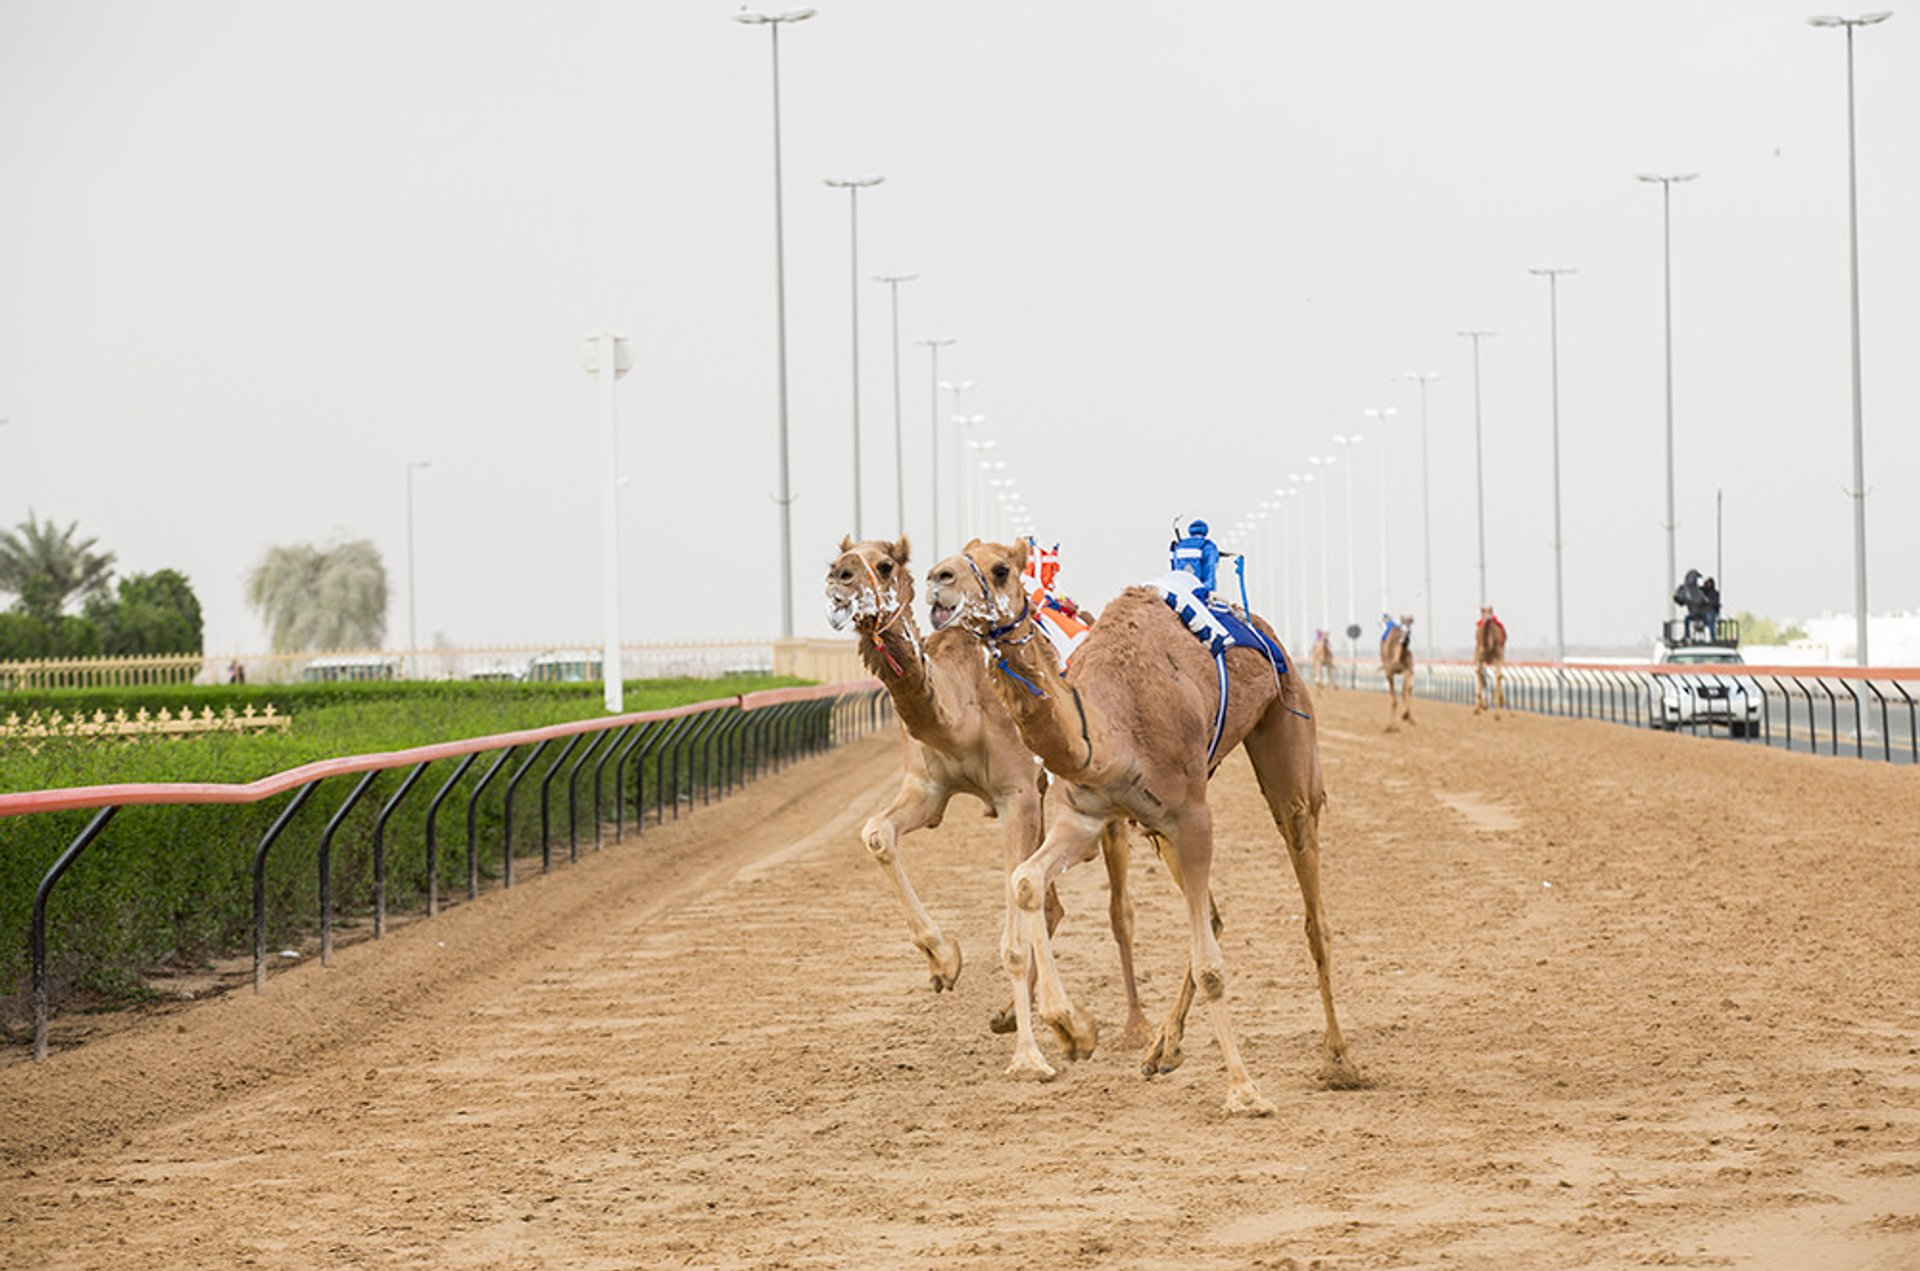 Best time for Camel Racing Season in Dubai